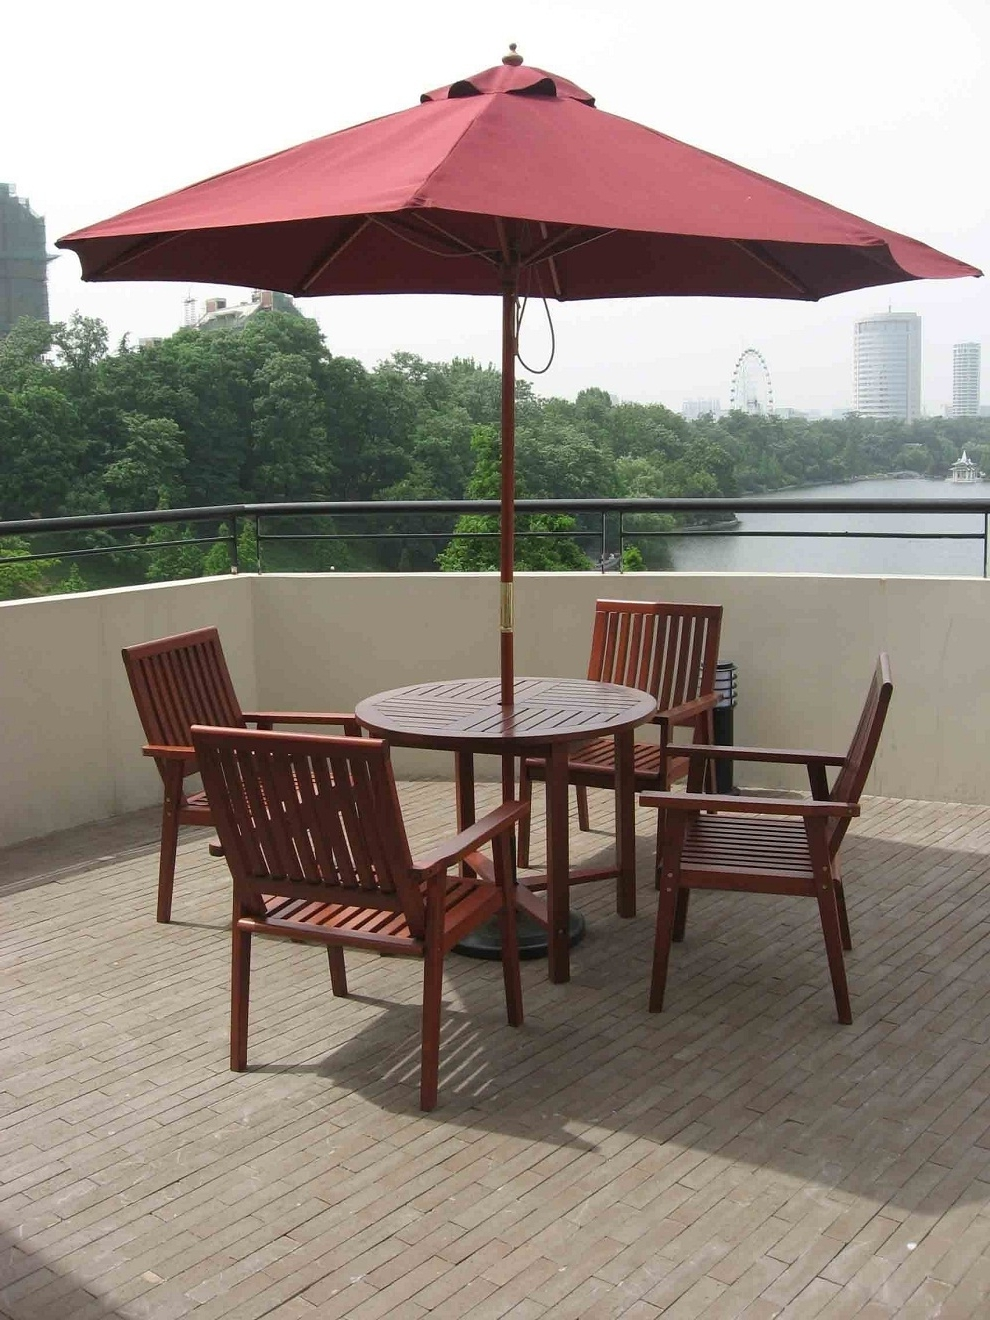 Latest Patio Furniture With Umbrellas Throughout Gorgeous Patio Table Umbrellas Patio Tables With Umbrella Ashery (View 7 of 20)